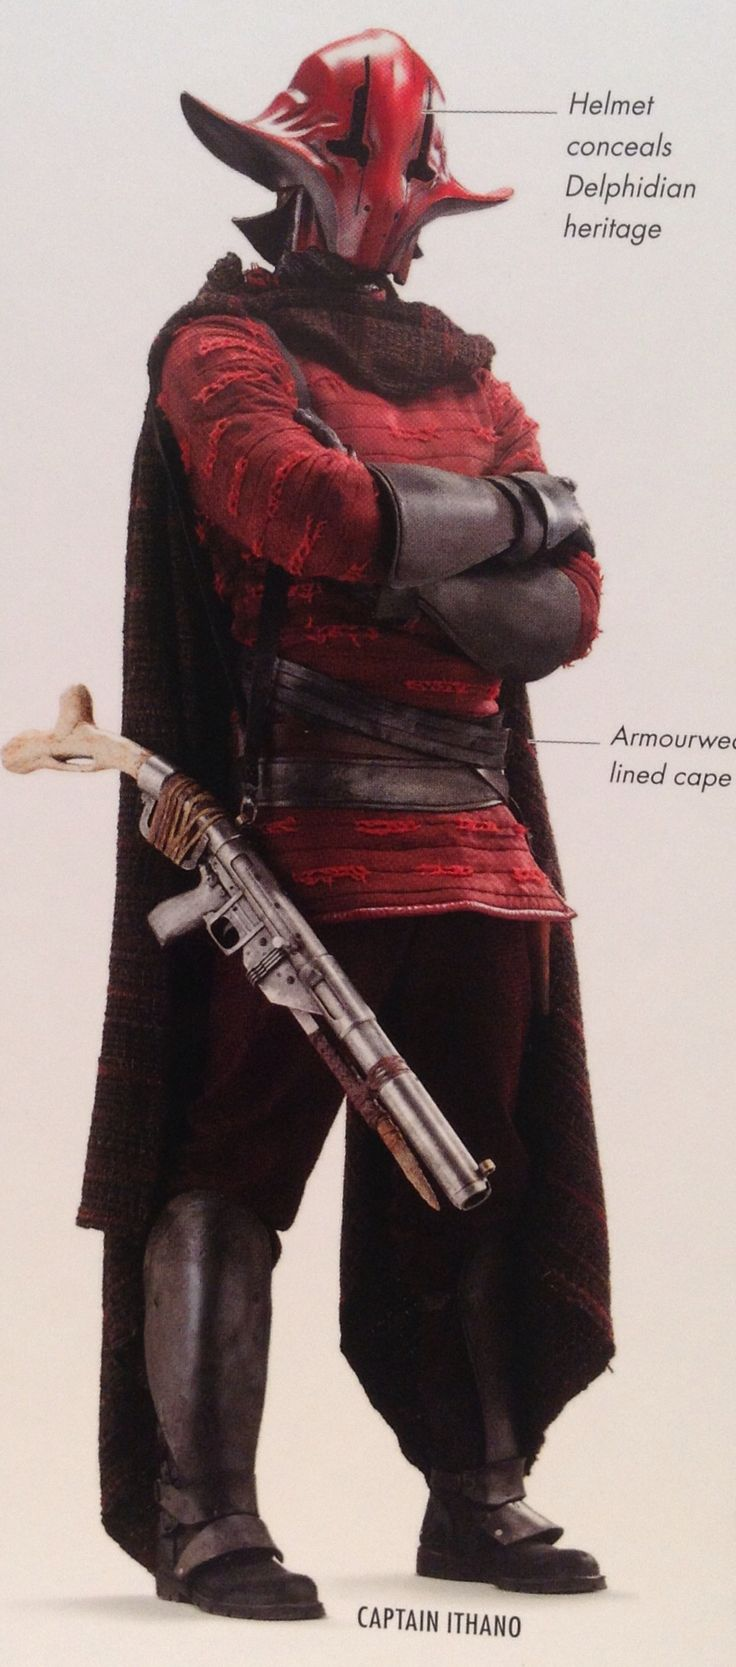 Captain Sidon Ithano, also known as The Crimson Corsair, was a pirate and a patron at Maz Kanata's castle.